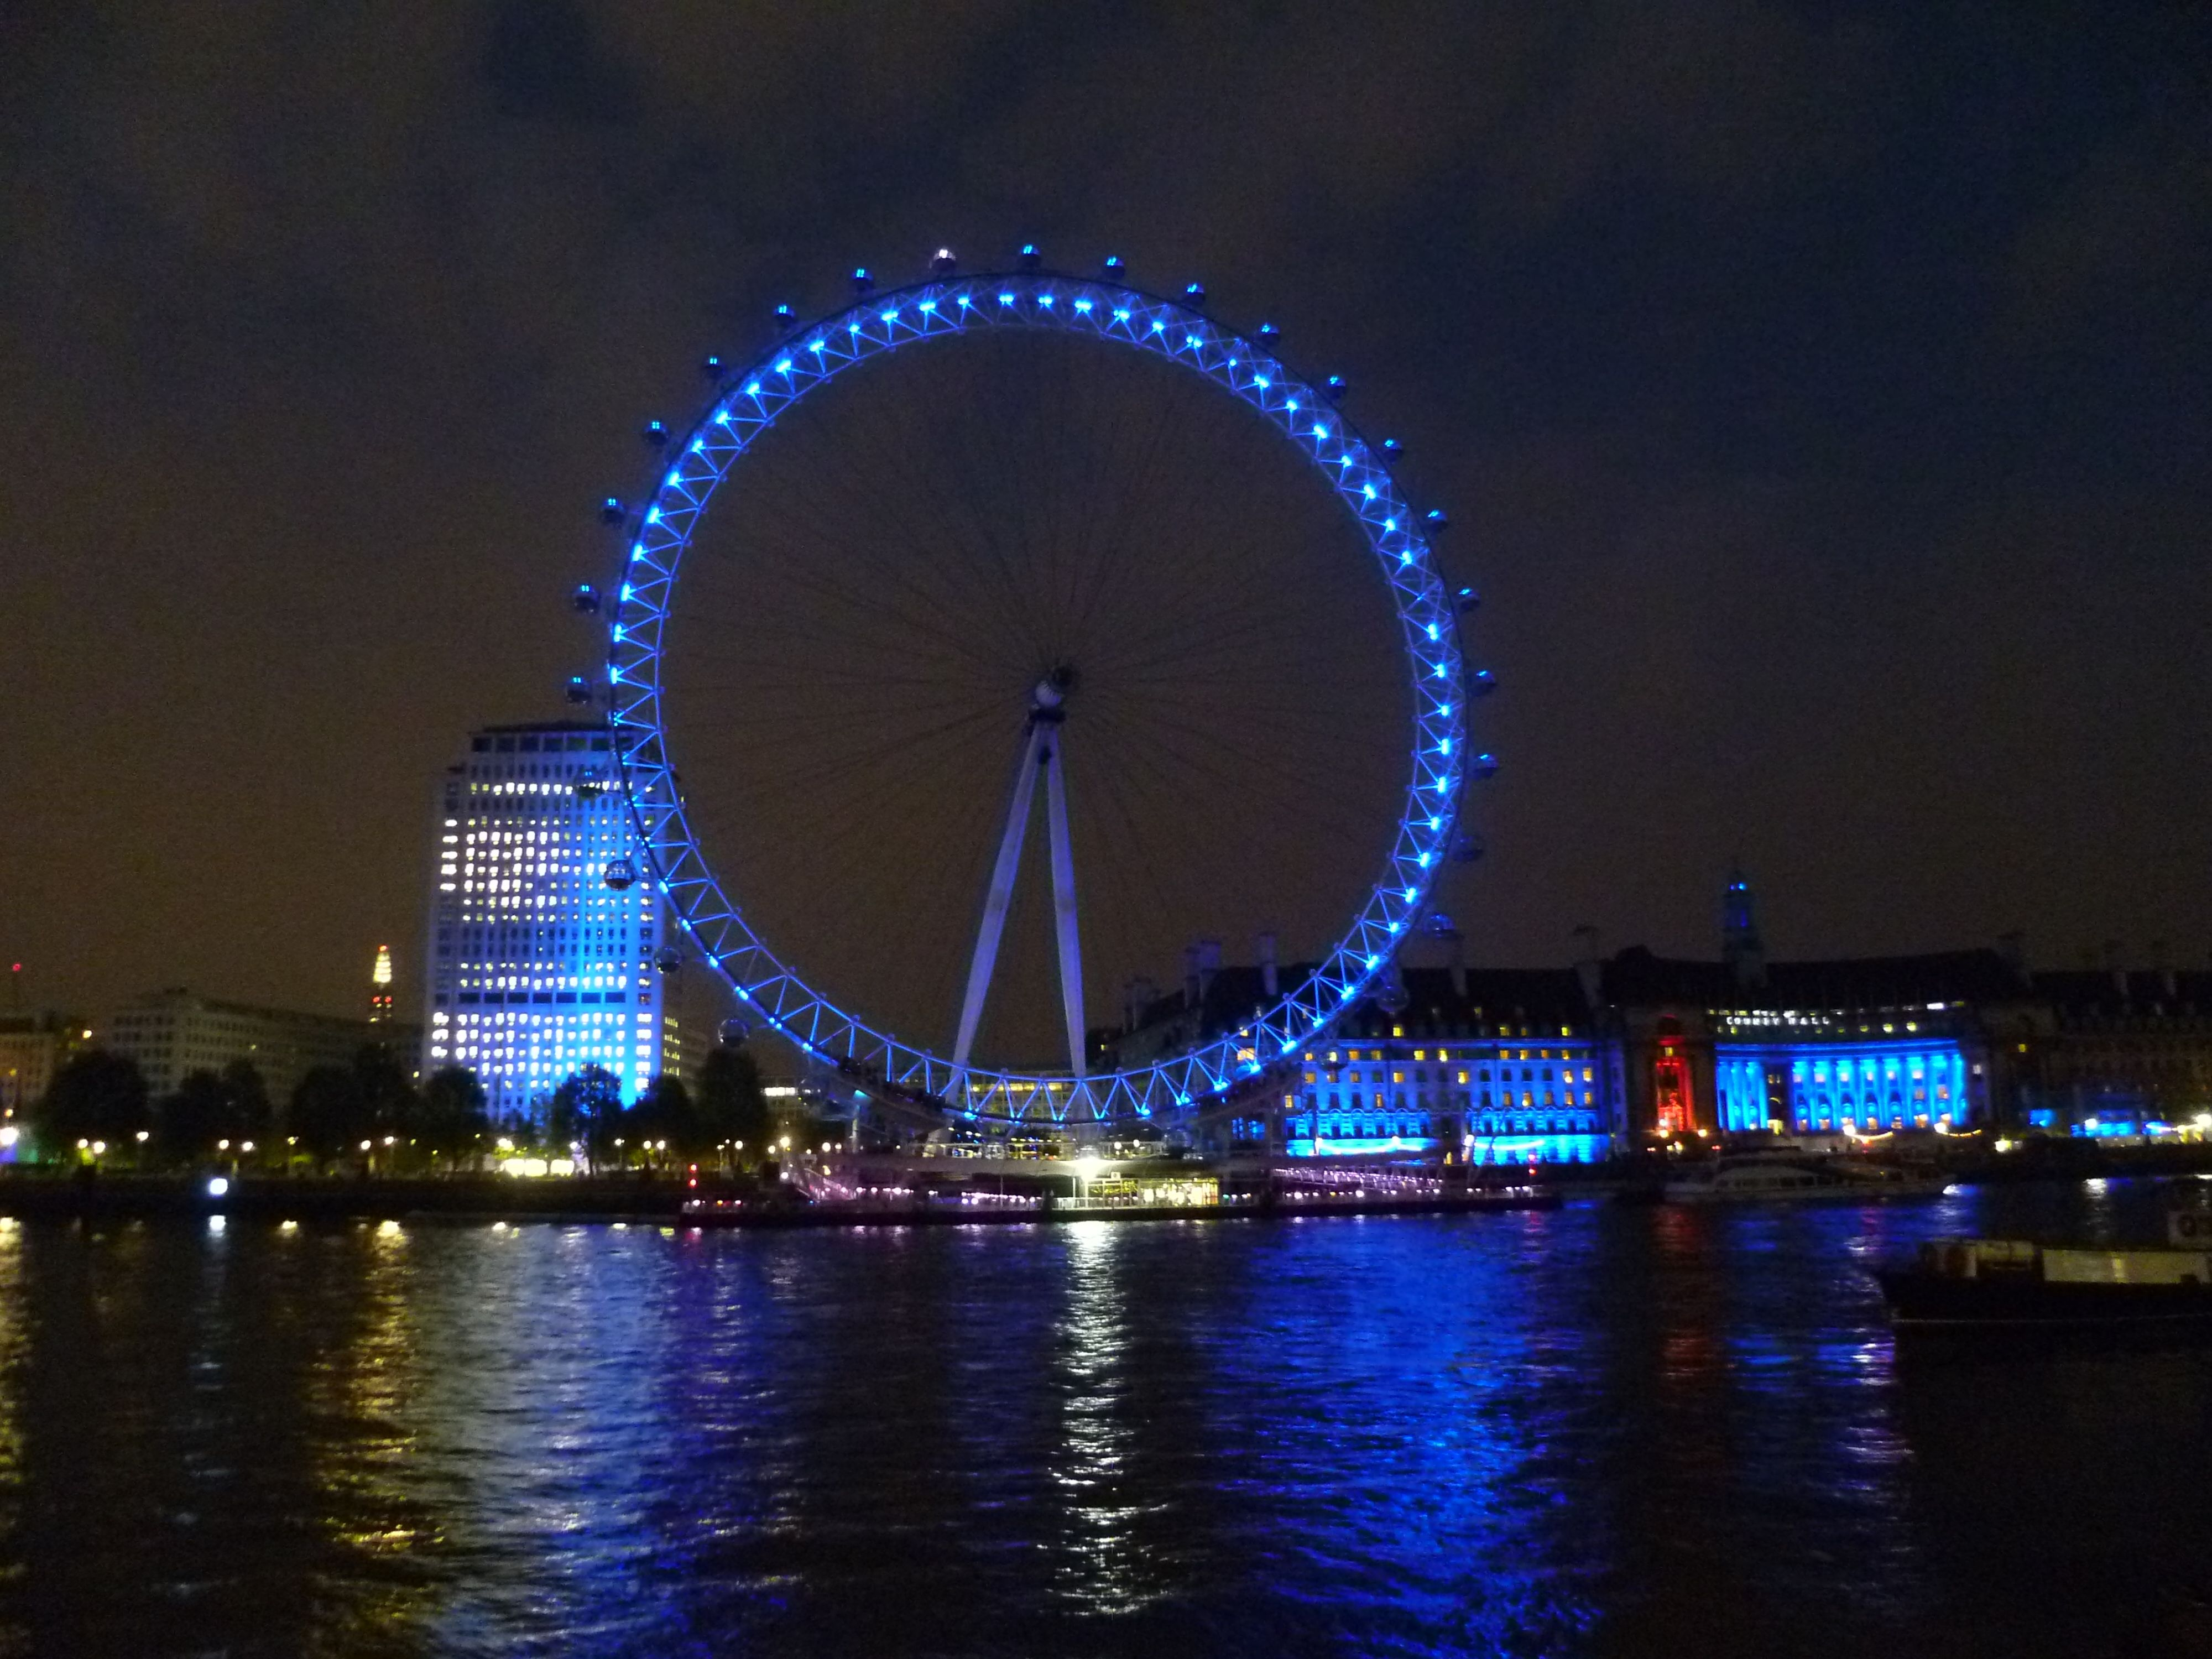 The London Eye by night